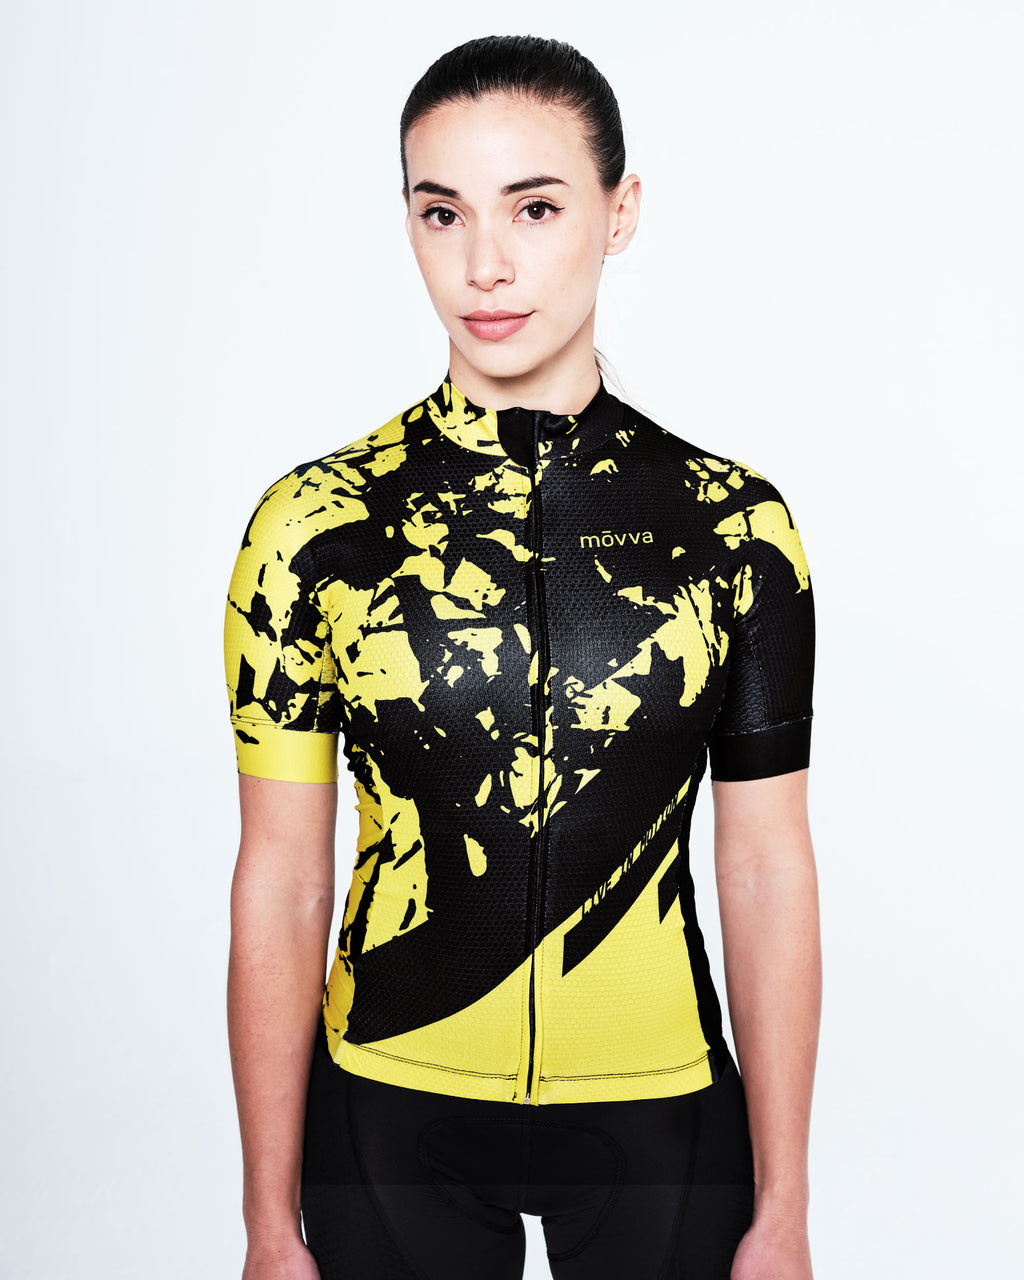 Roadie Jersey - Mujer